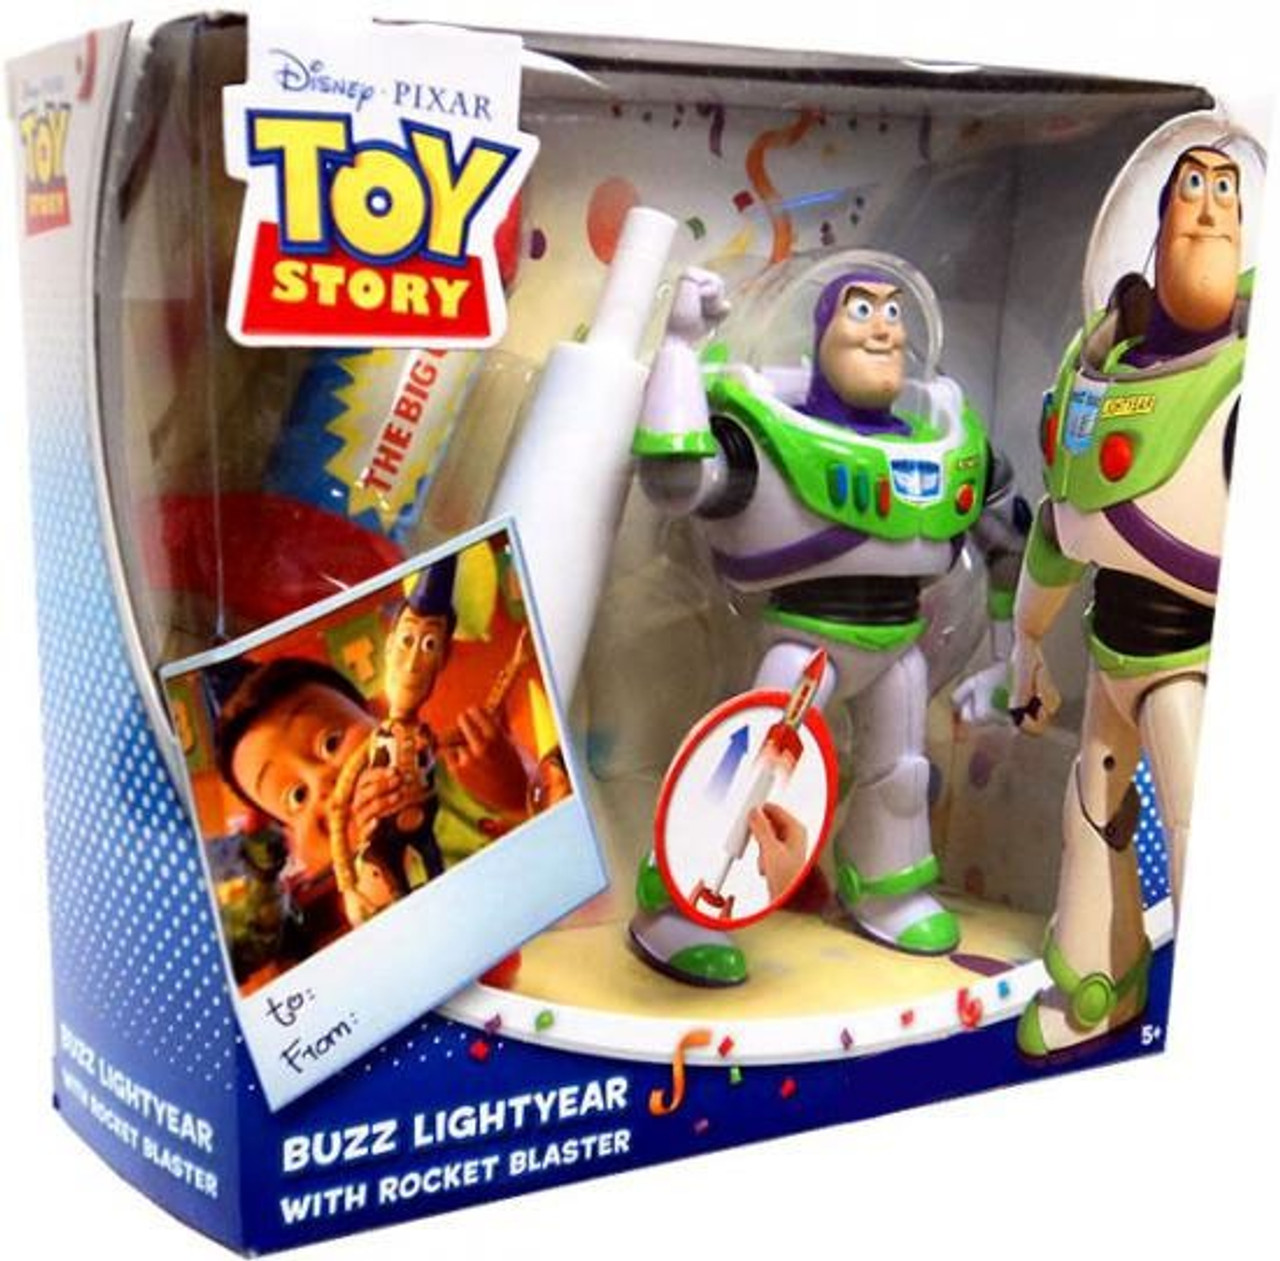 Toy Story Buzz Lightyear Exclusive Action Figure Playset [With Rocket Blaster]